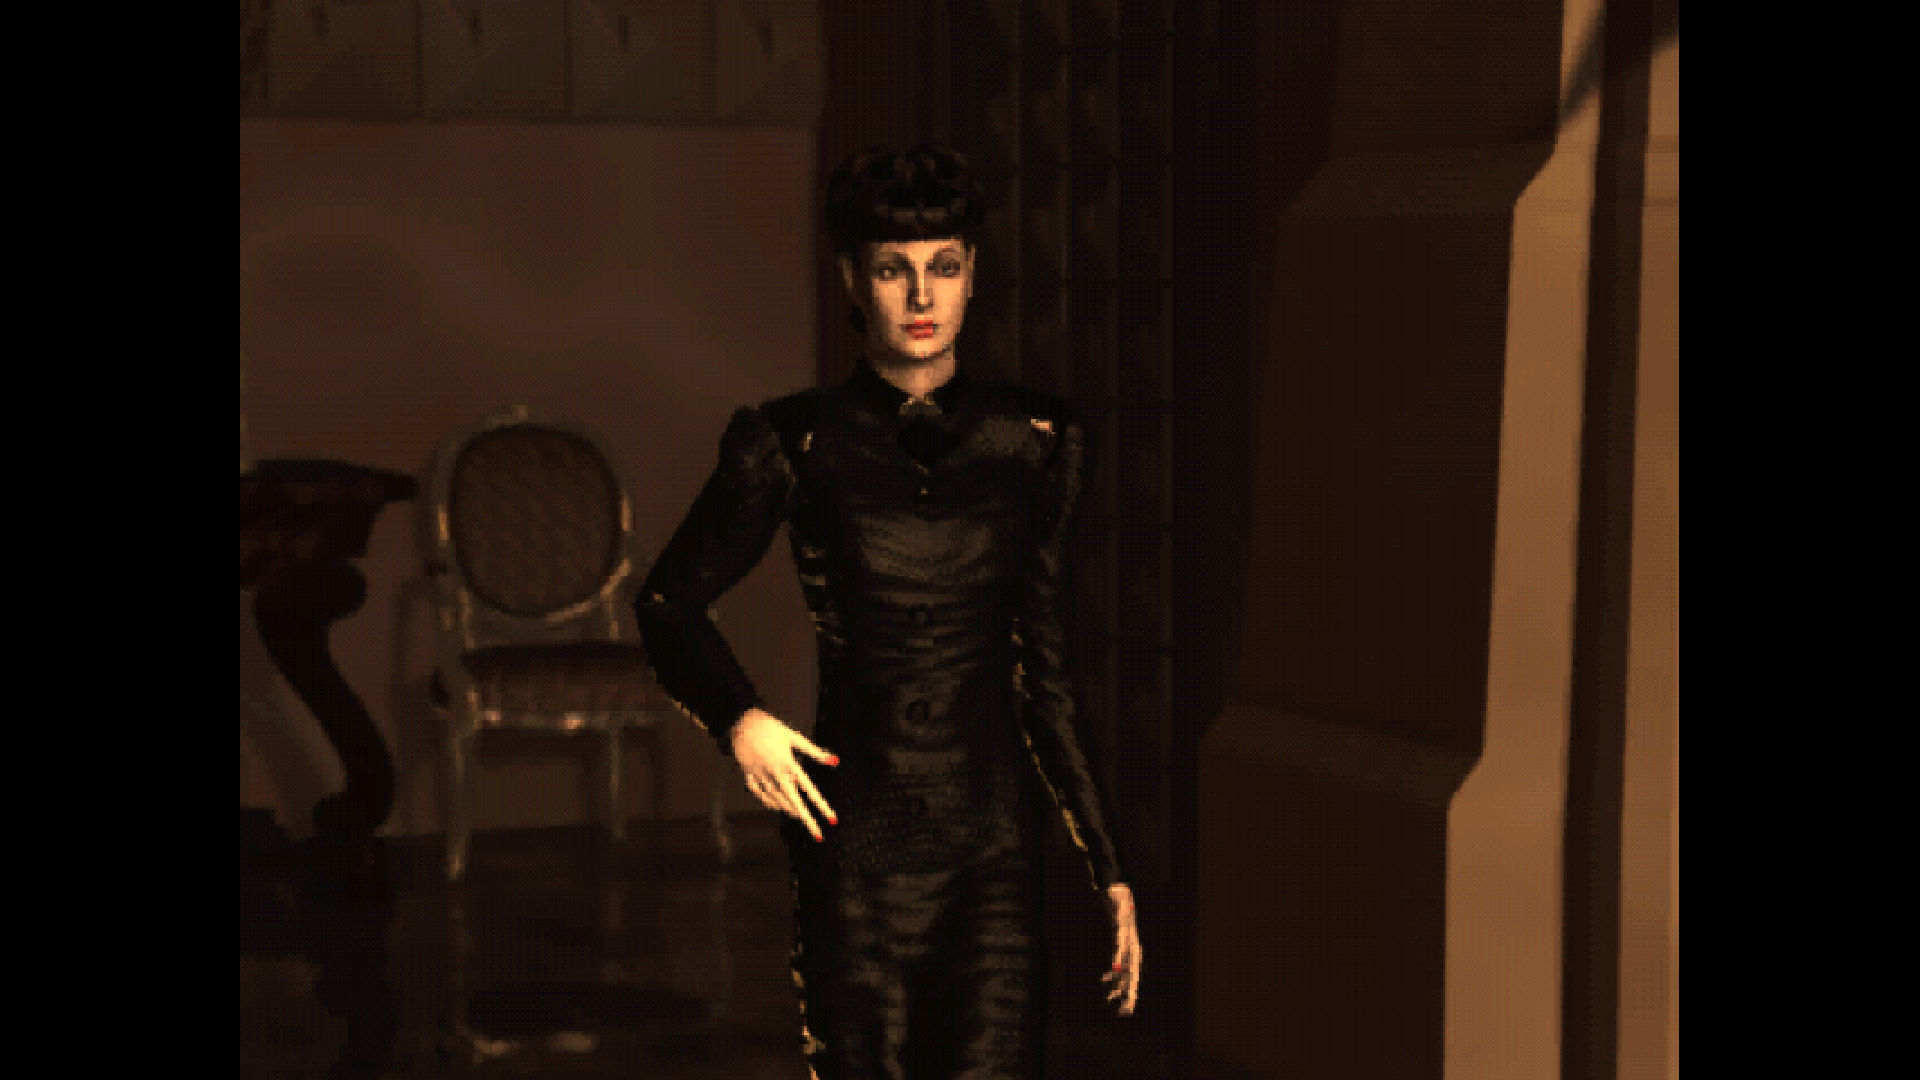 Long Lost Blade Runner Pc Game From 1997 Remade And Ready To Play